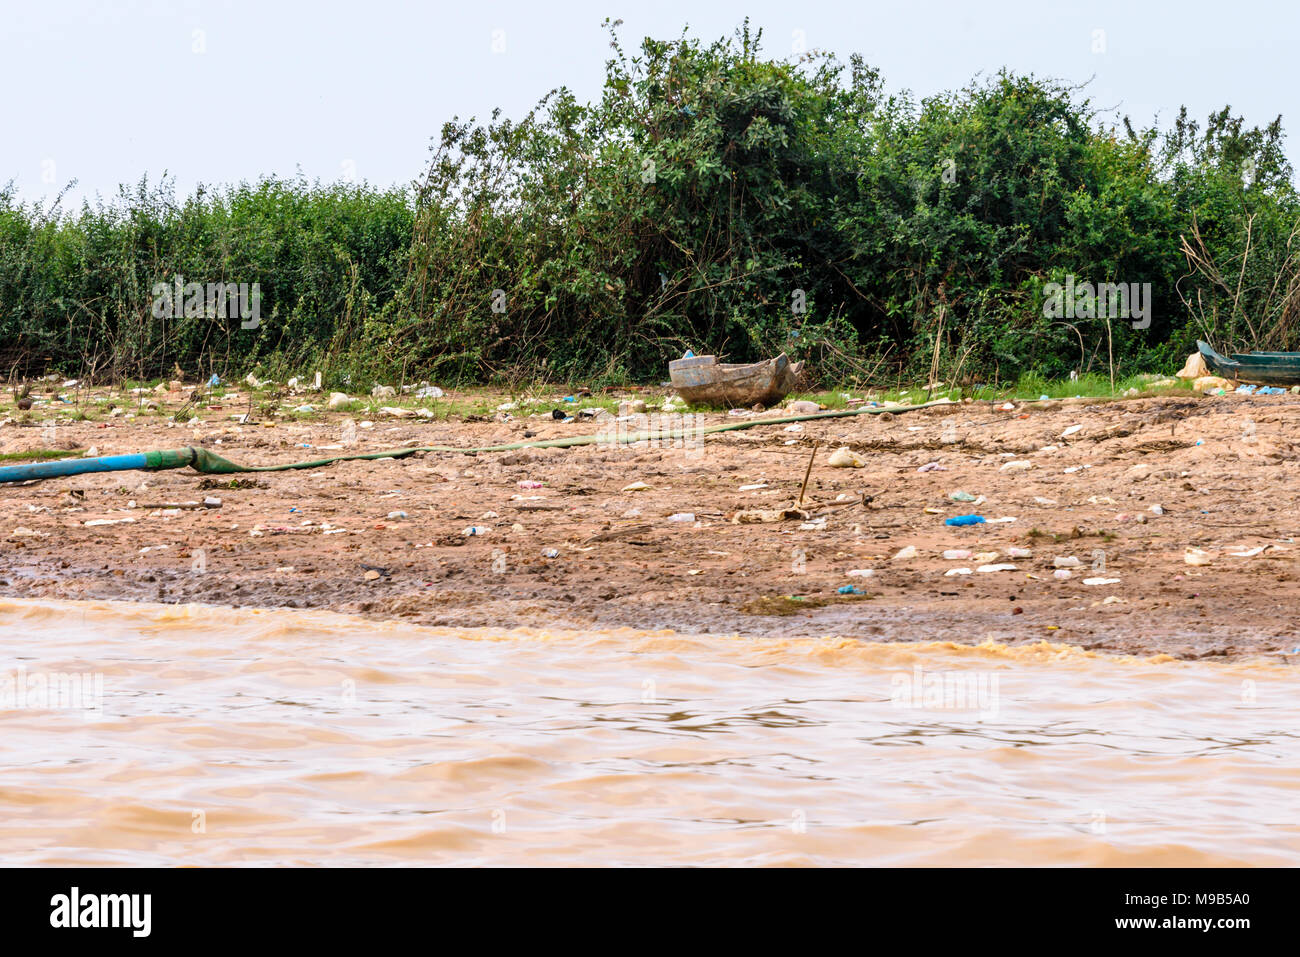 Huge amounts of plastic bottles, bags and boxes line the Siem Reap river in Cambodia. - Stock Image